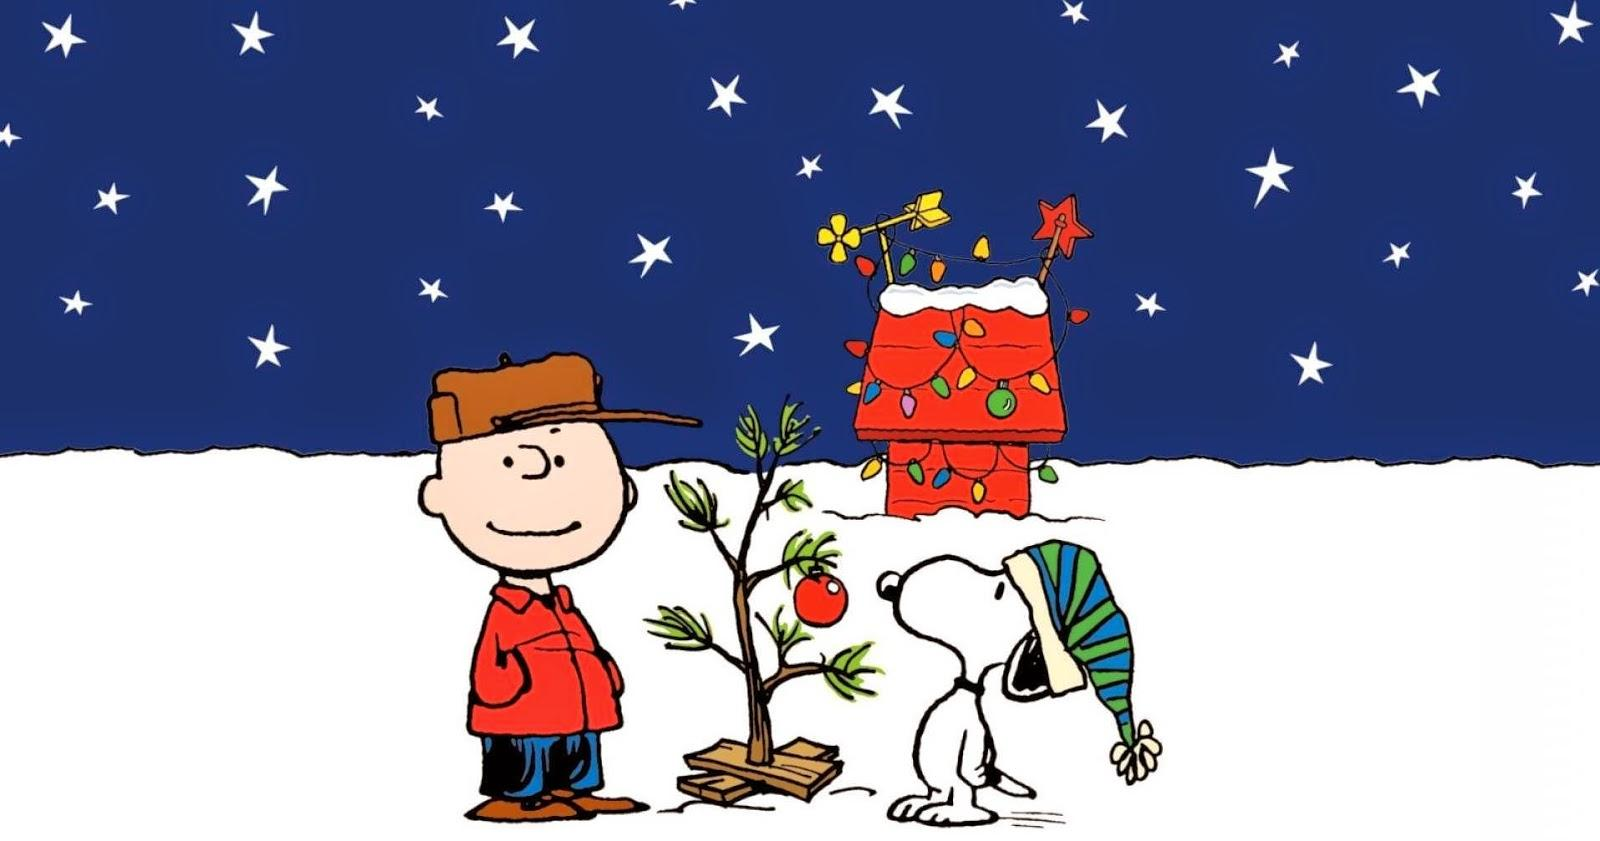 Charlie Brown Christmas Tree Clipart.